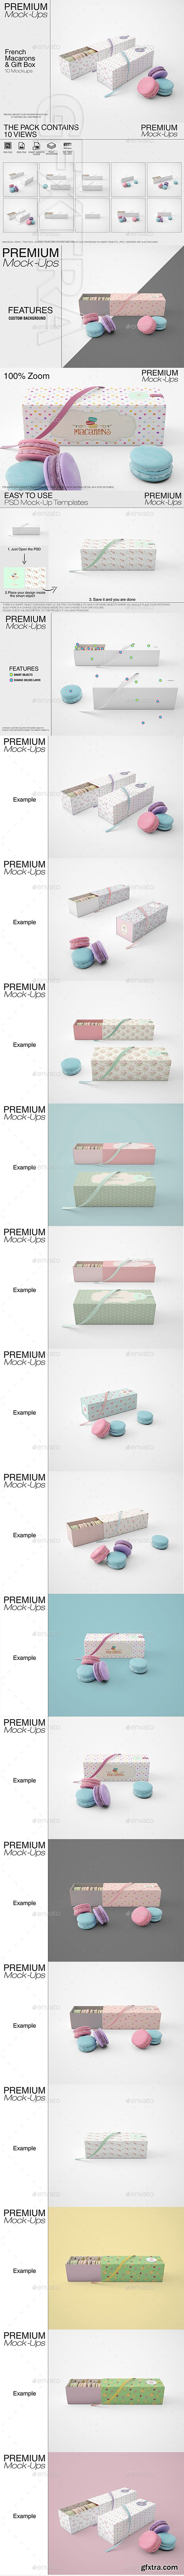 GR - French Macarons & Gift Box Mockup Pack 22050683